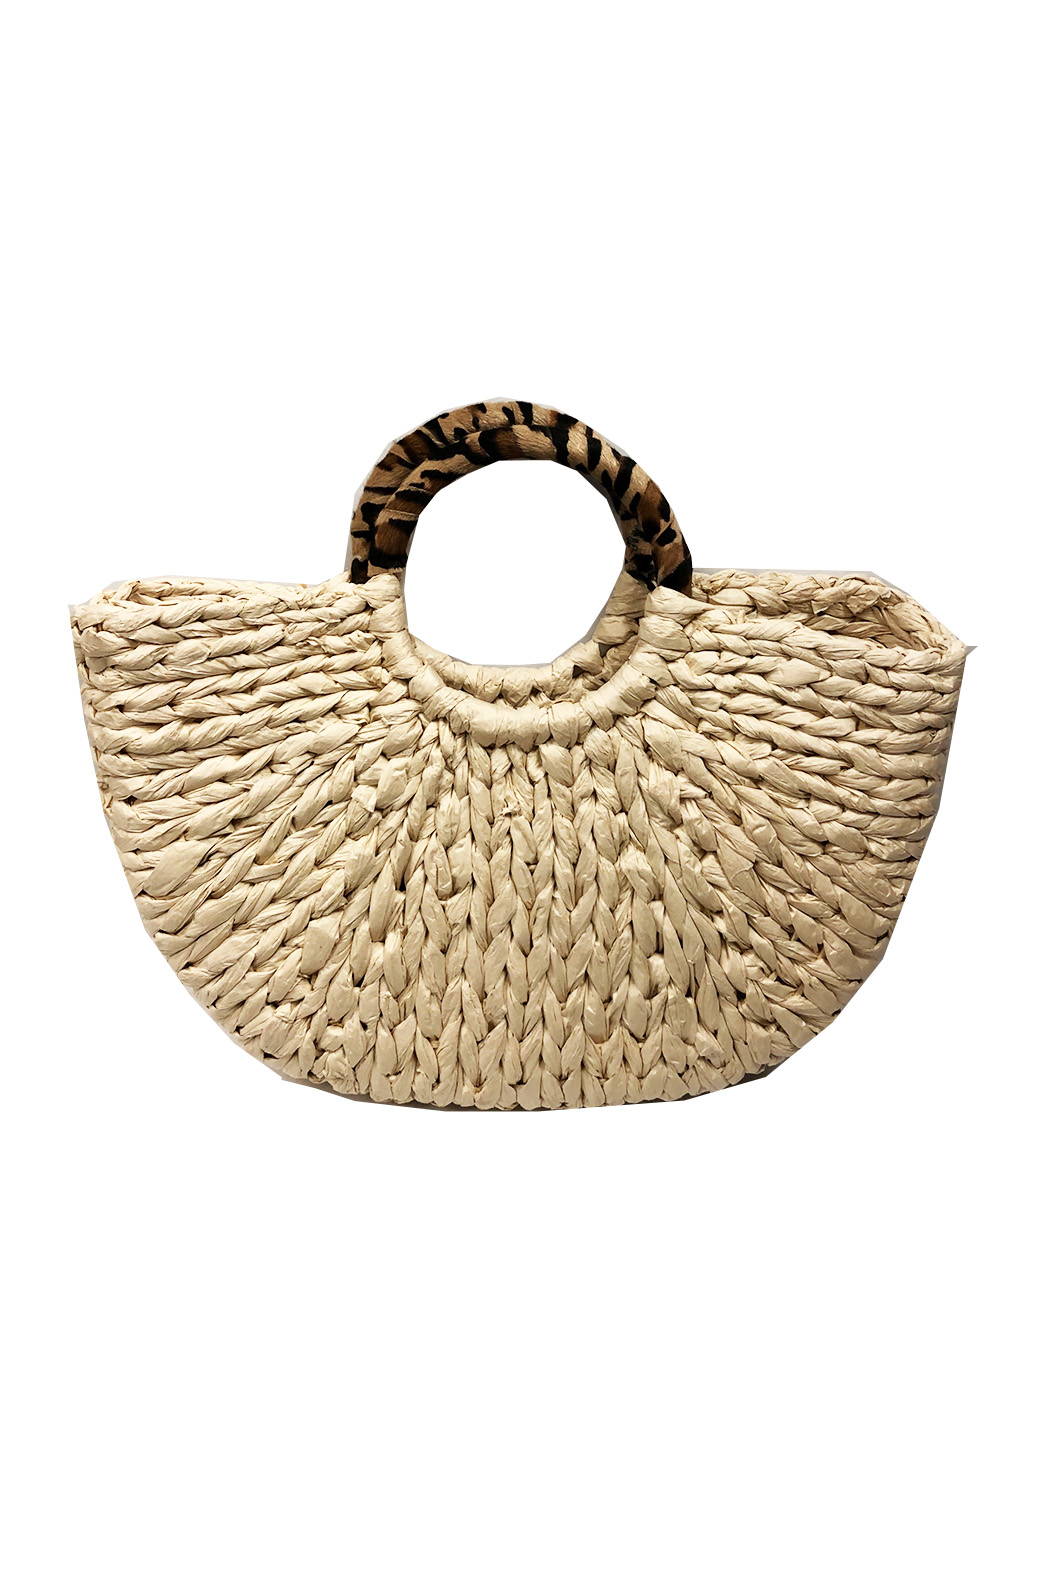 BTB Los Angeles  Wild Thing Straw Tote - Front Full Image